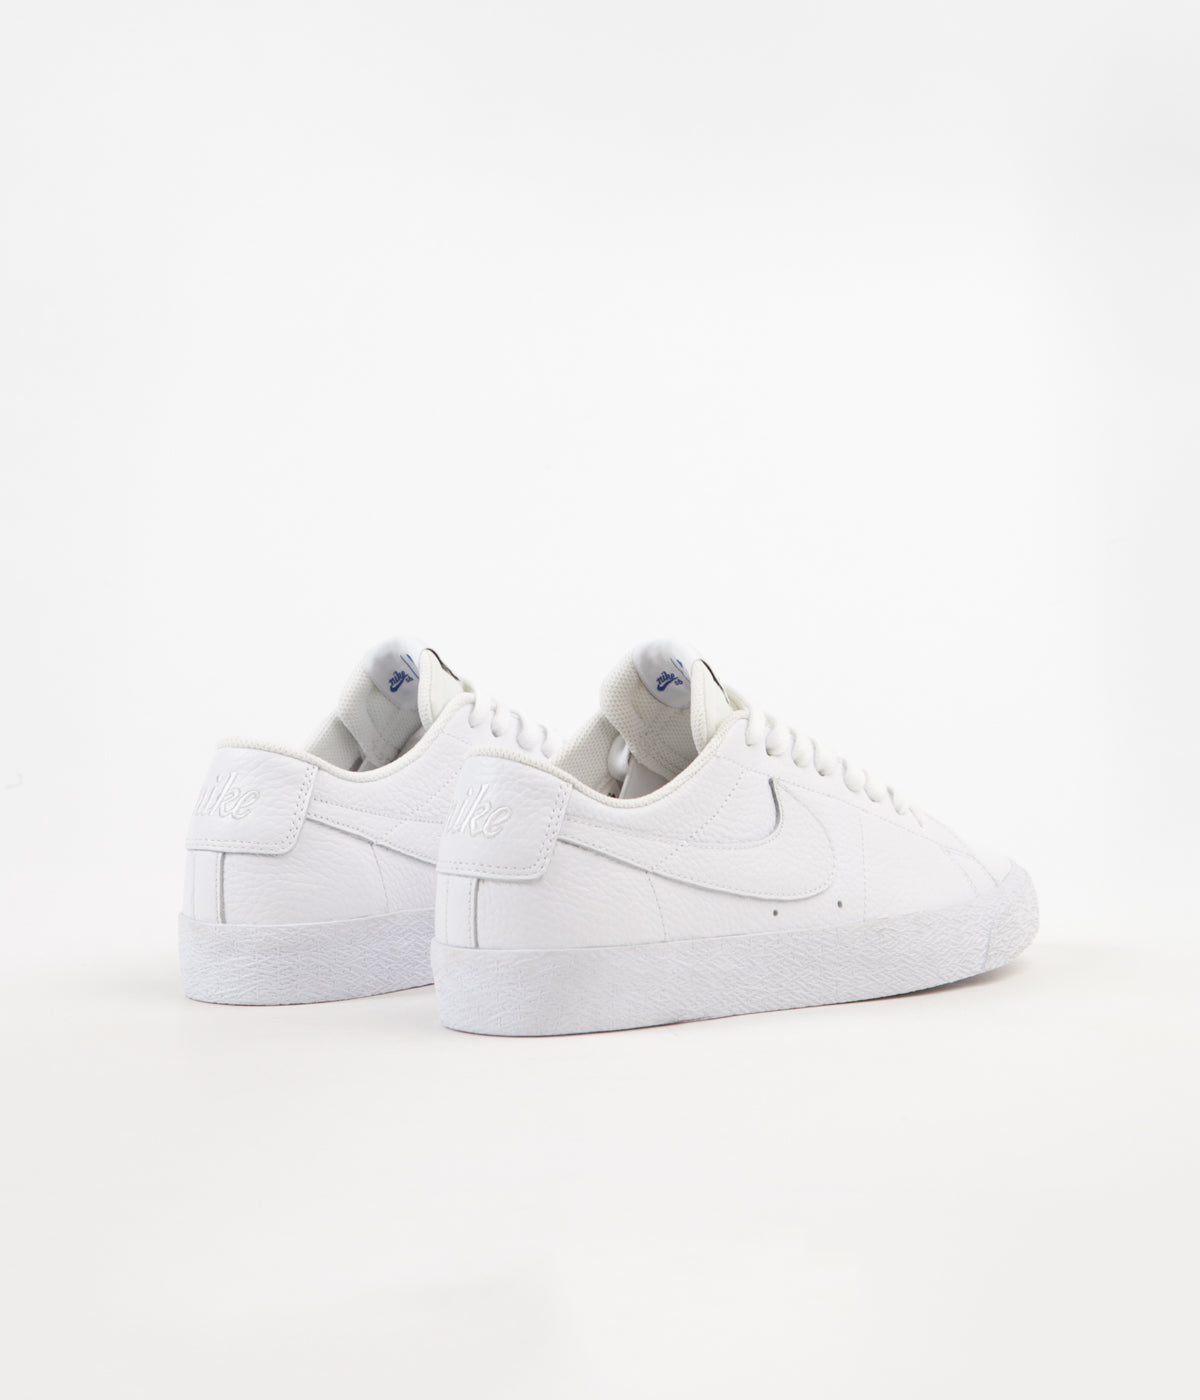 7b20e6743395 ... Nike SB x NBA Blazer Low Shoes - White   White - Rush Blue - University  ...